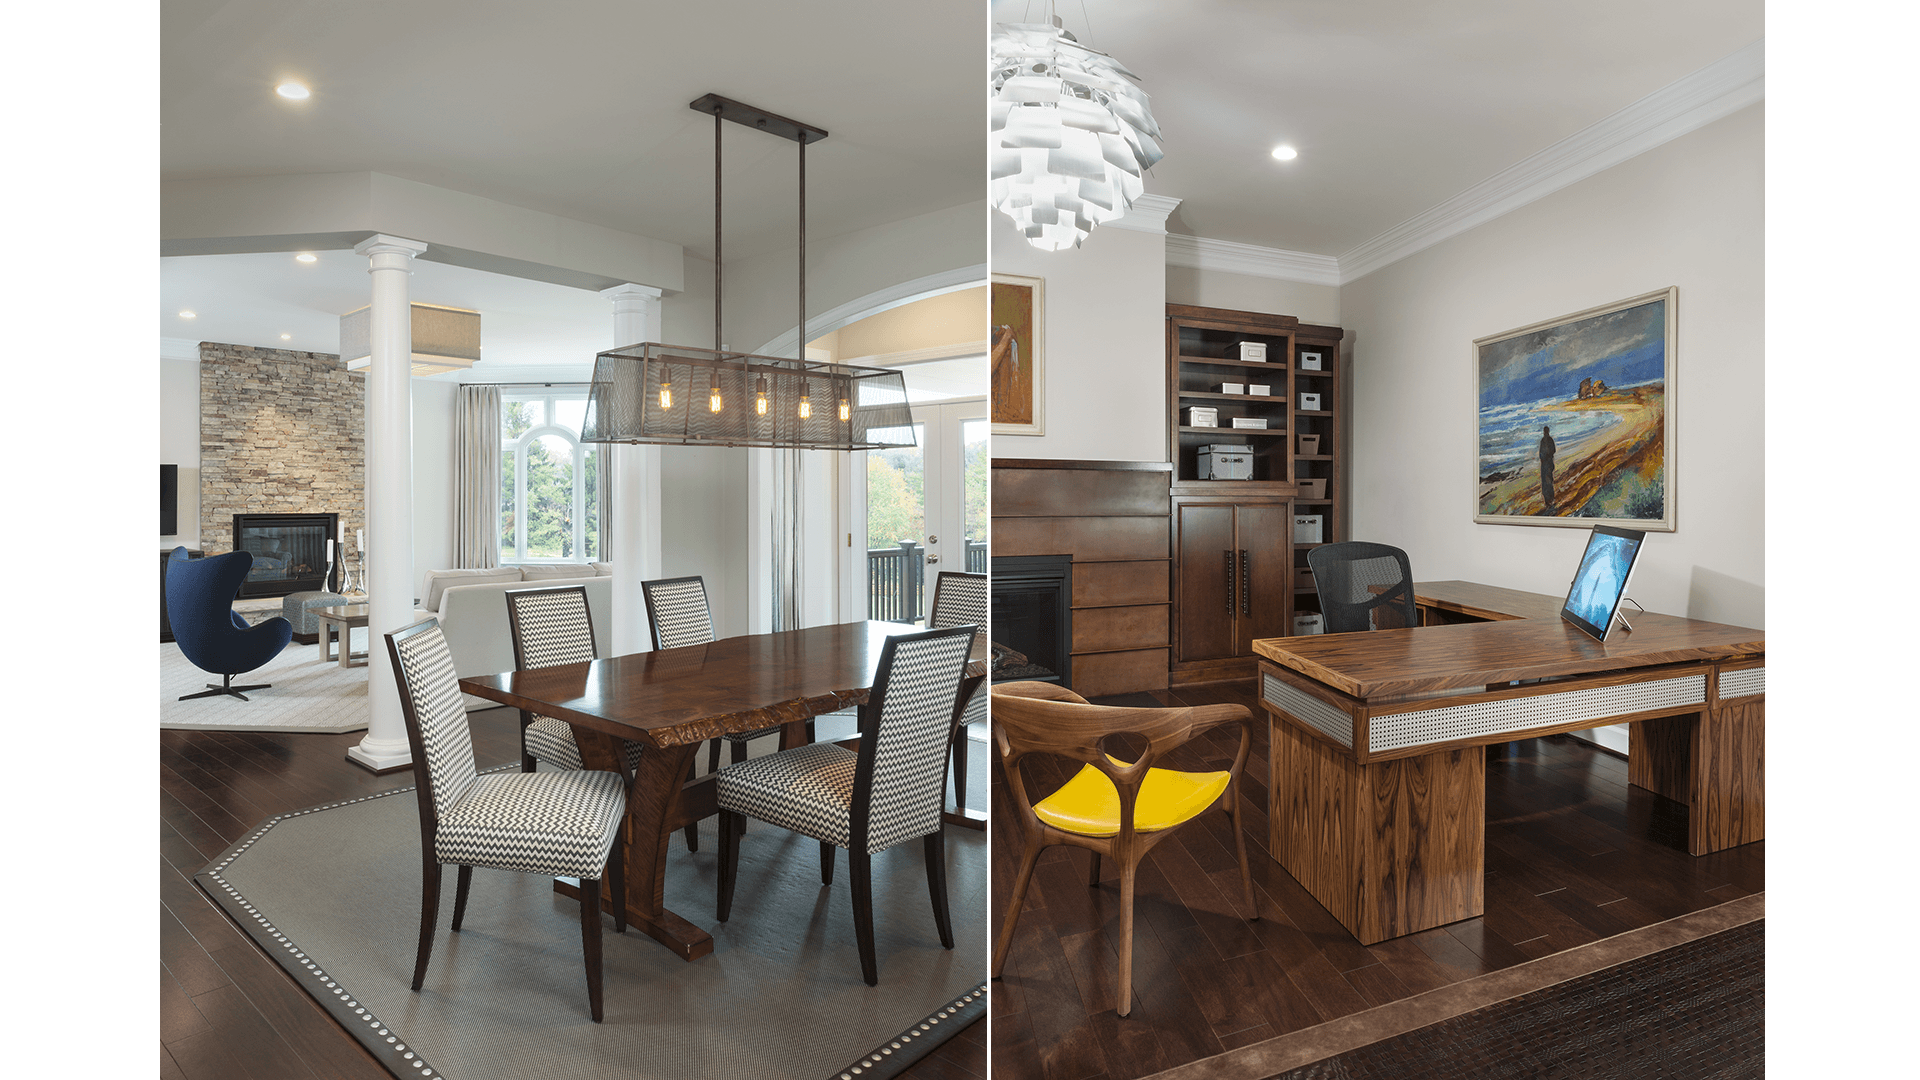 The Morning Room and Office in a Gulick | One home on Innsbruck Avenue. © Hoachlander-Davis Photography. All Rights Reserved. Used with Permission.